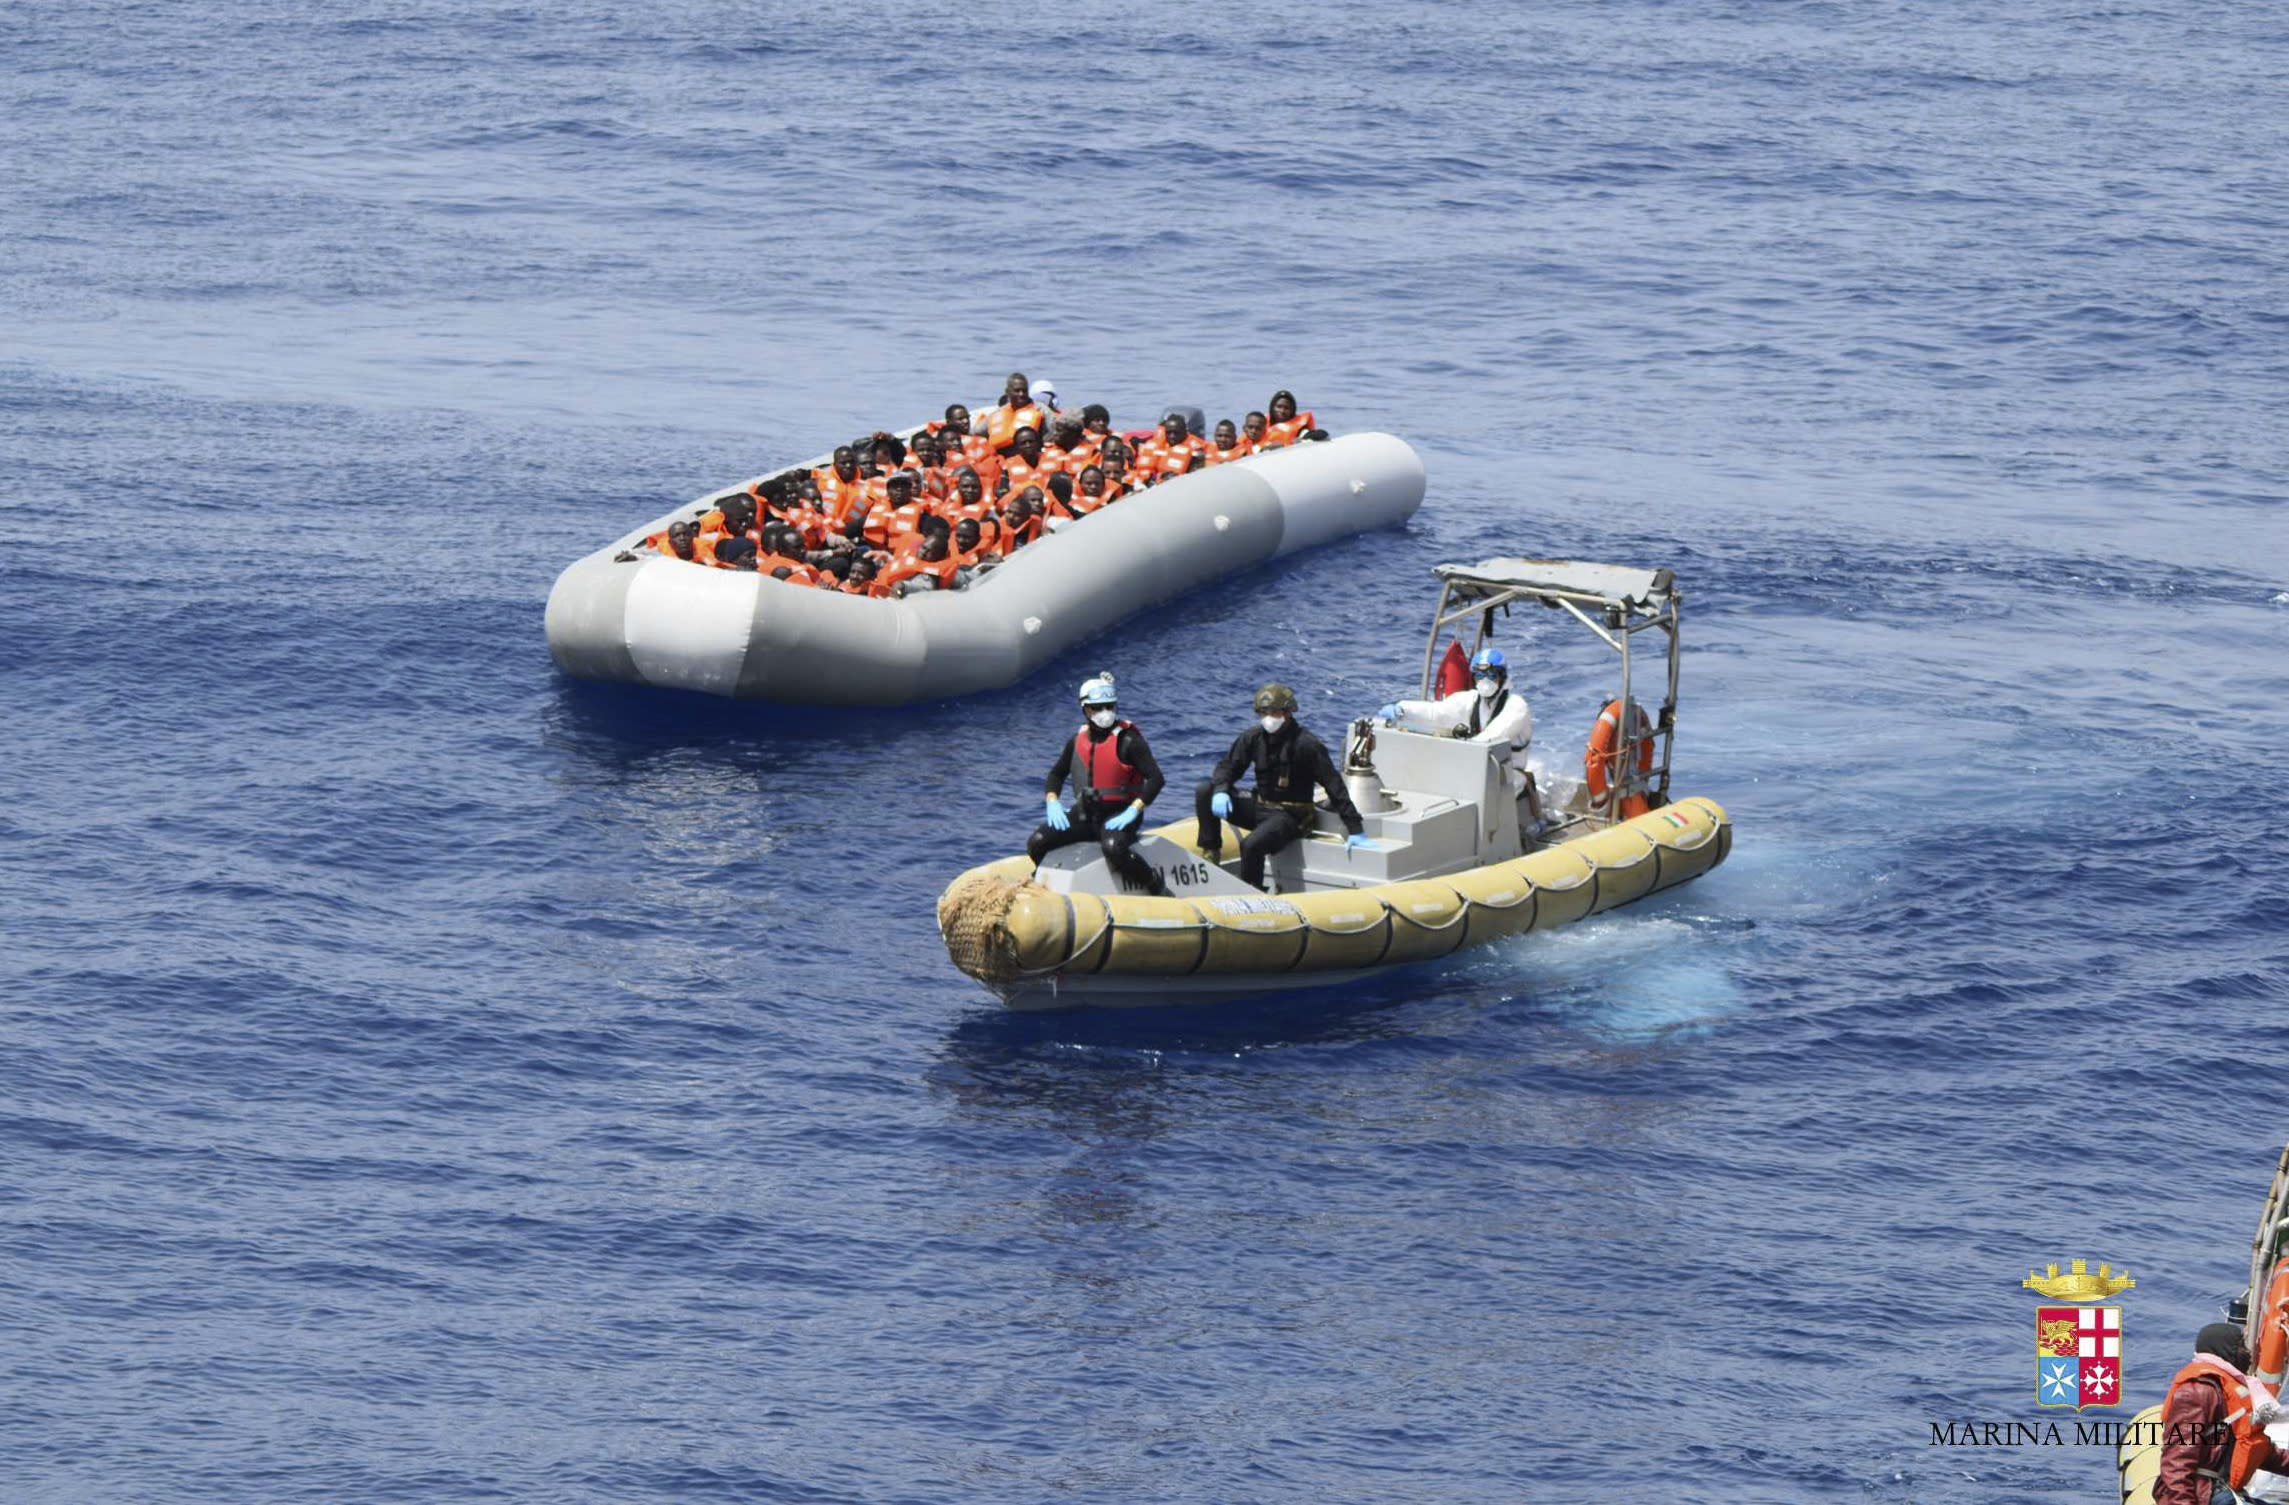 UN: 880 killed in Mediterranean shipwrecks over last week